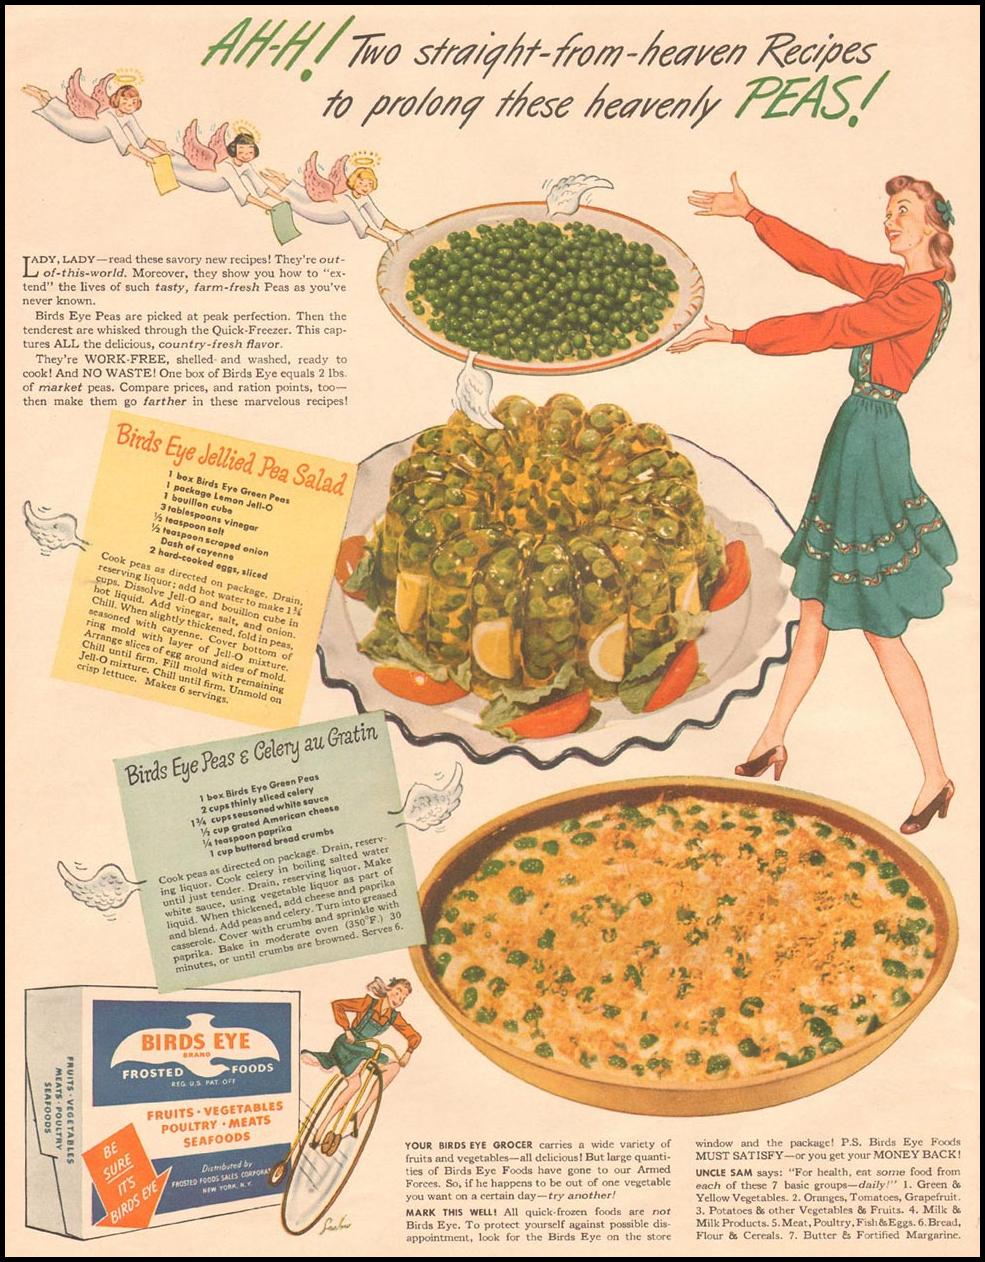 BIRDS EYE FROZEN FOODS